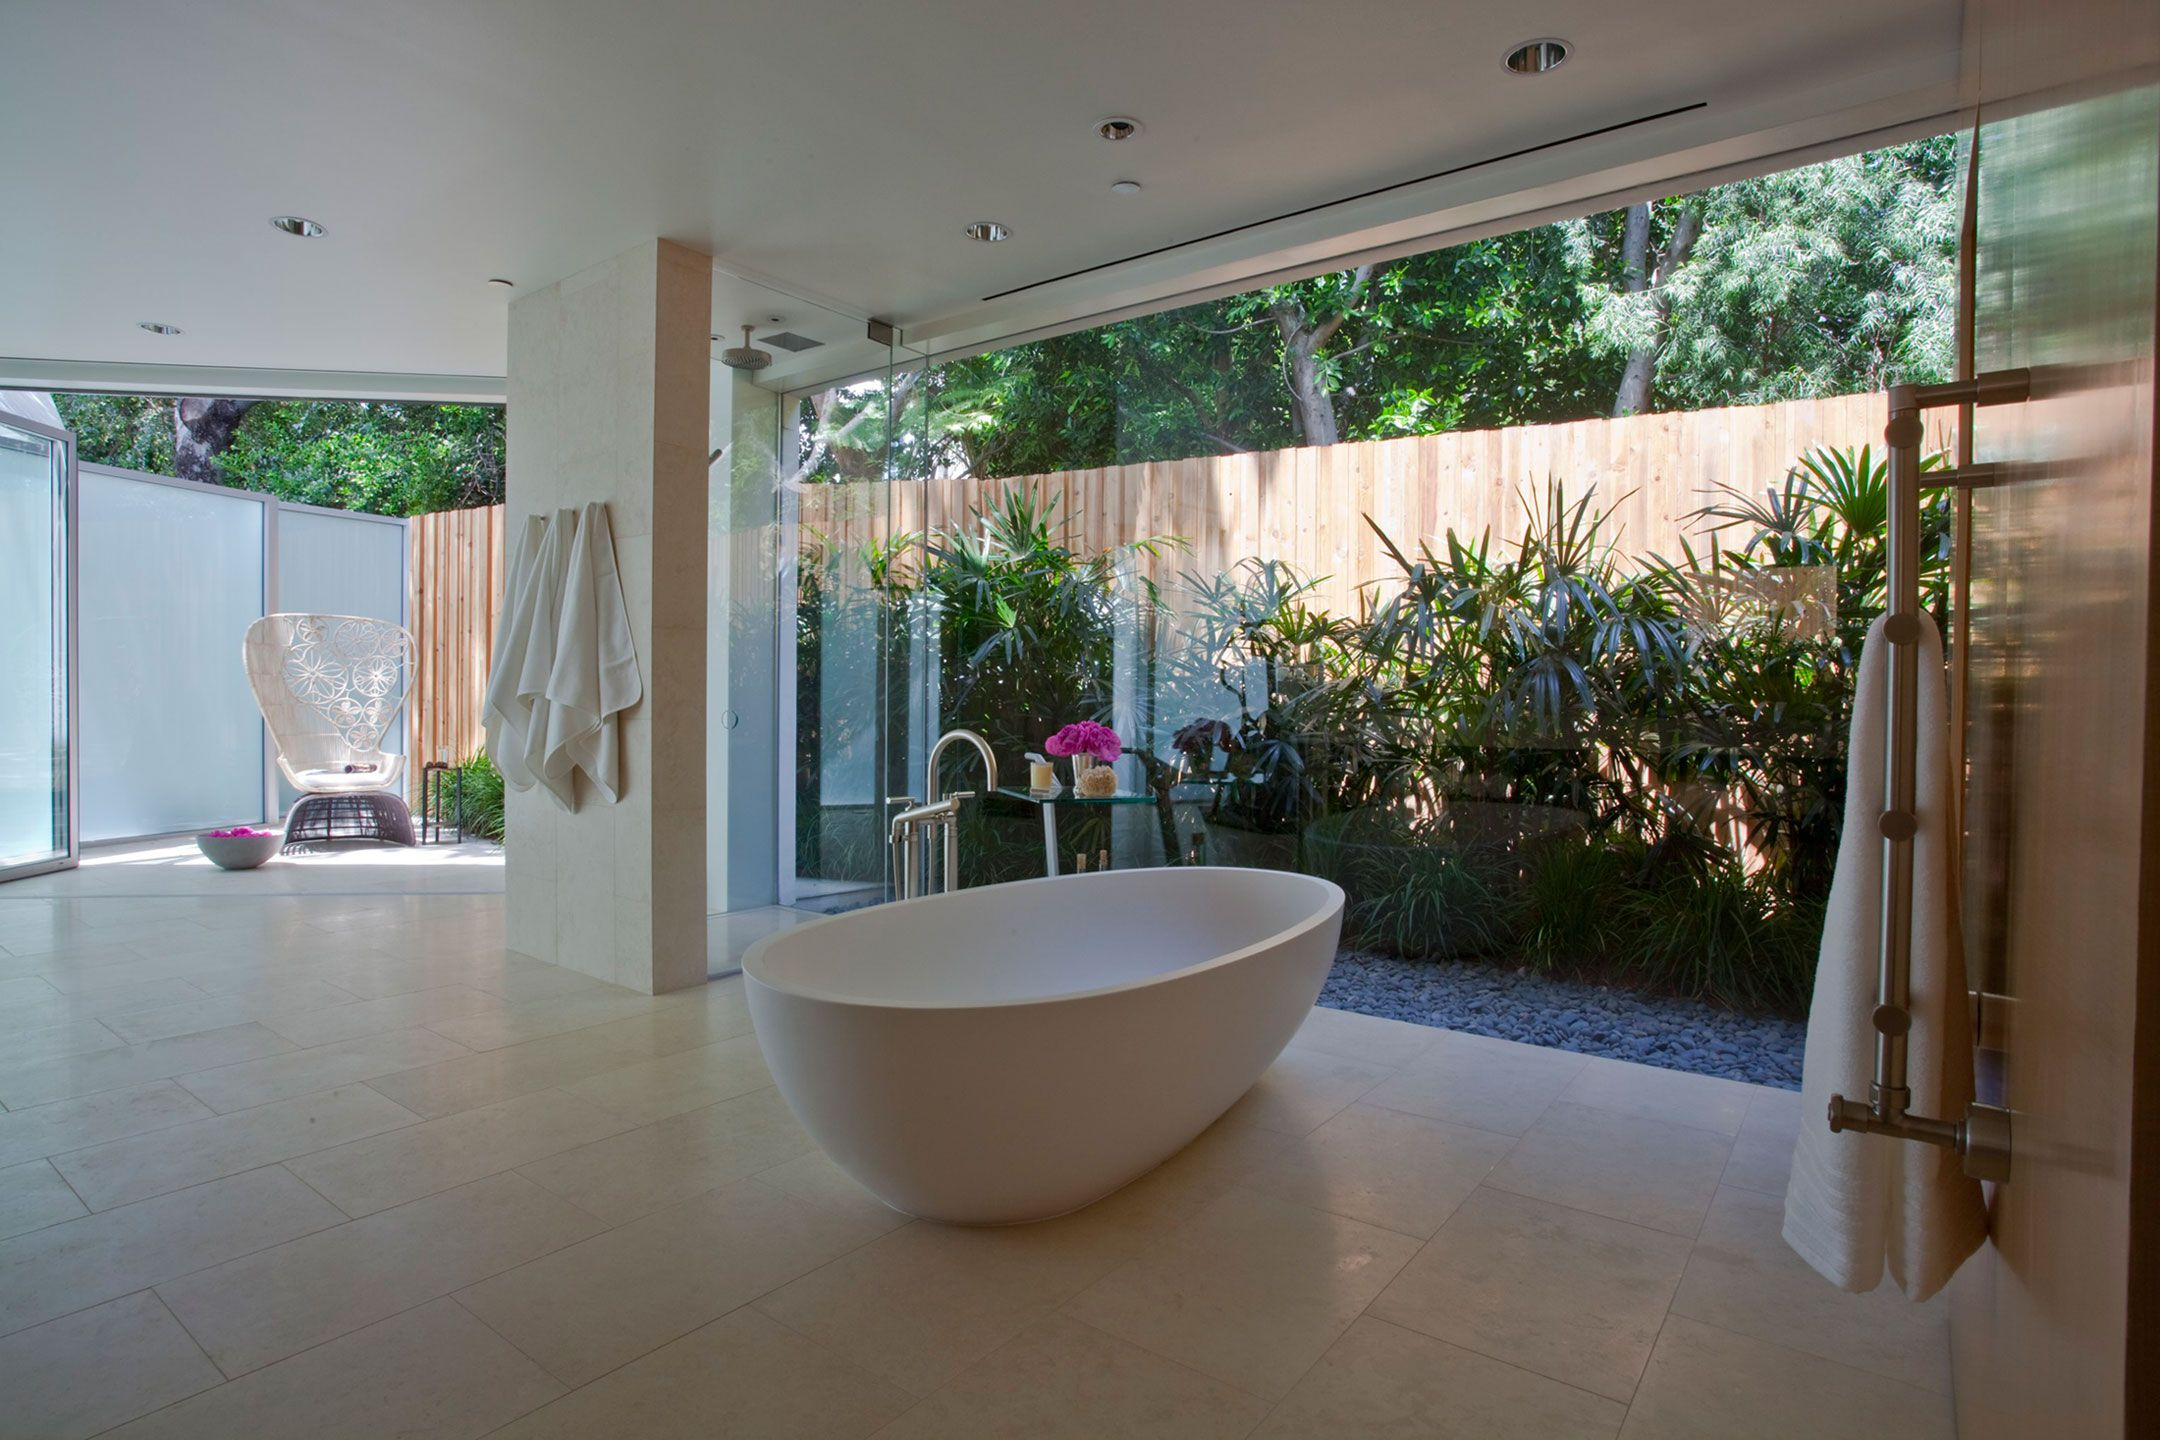 Open bathroom under california contemporary by rozalynn woods interior design applied clean also large glass window